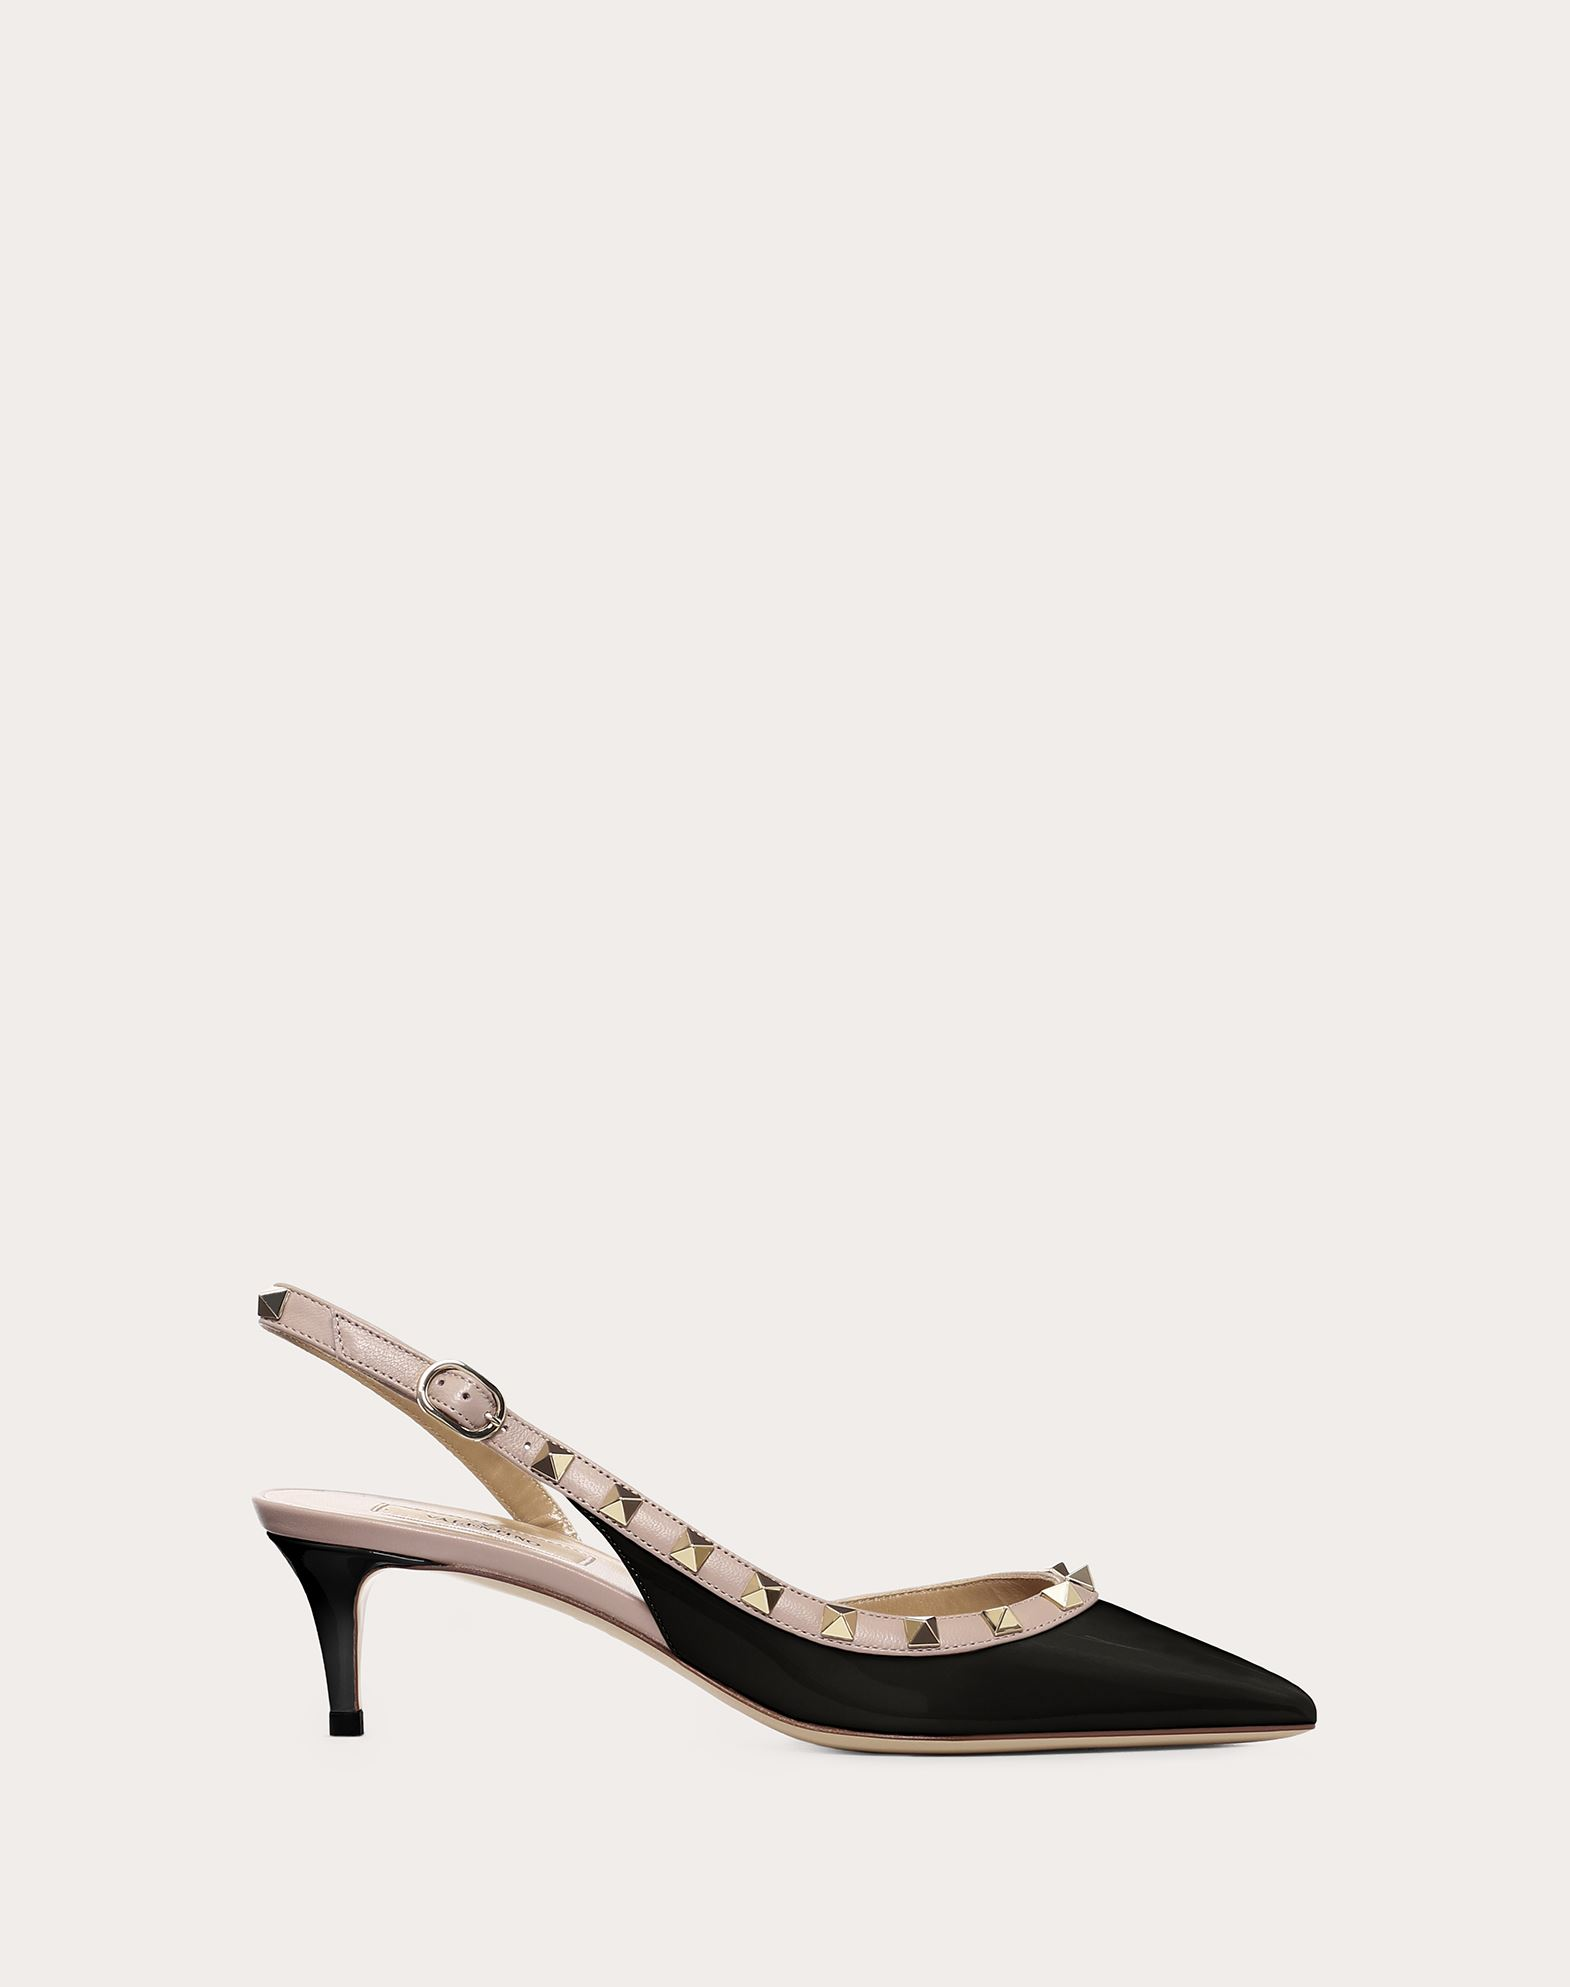 Rockstud Patent Leather Slingback Pump 50 mm